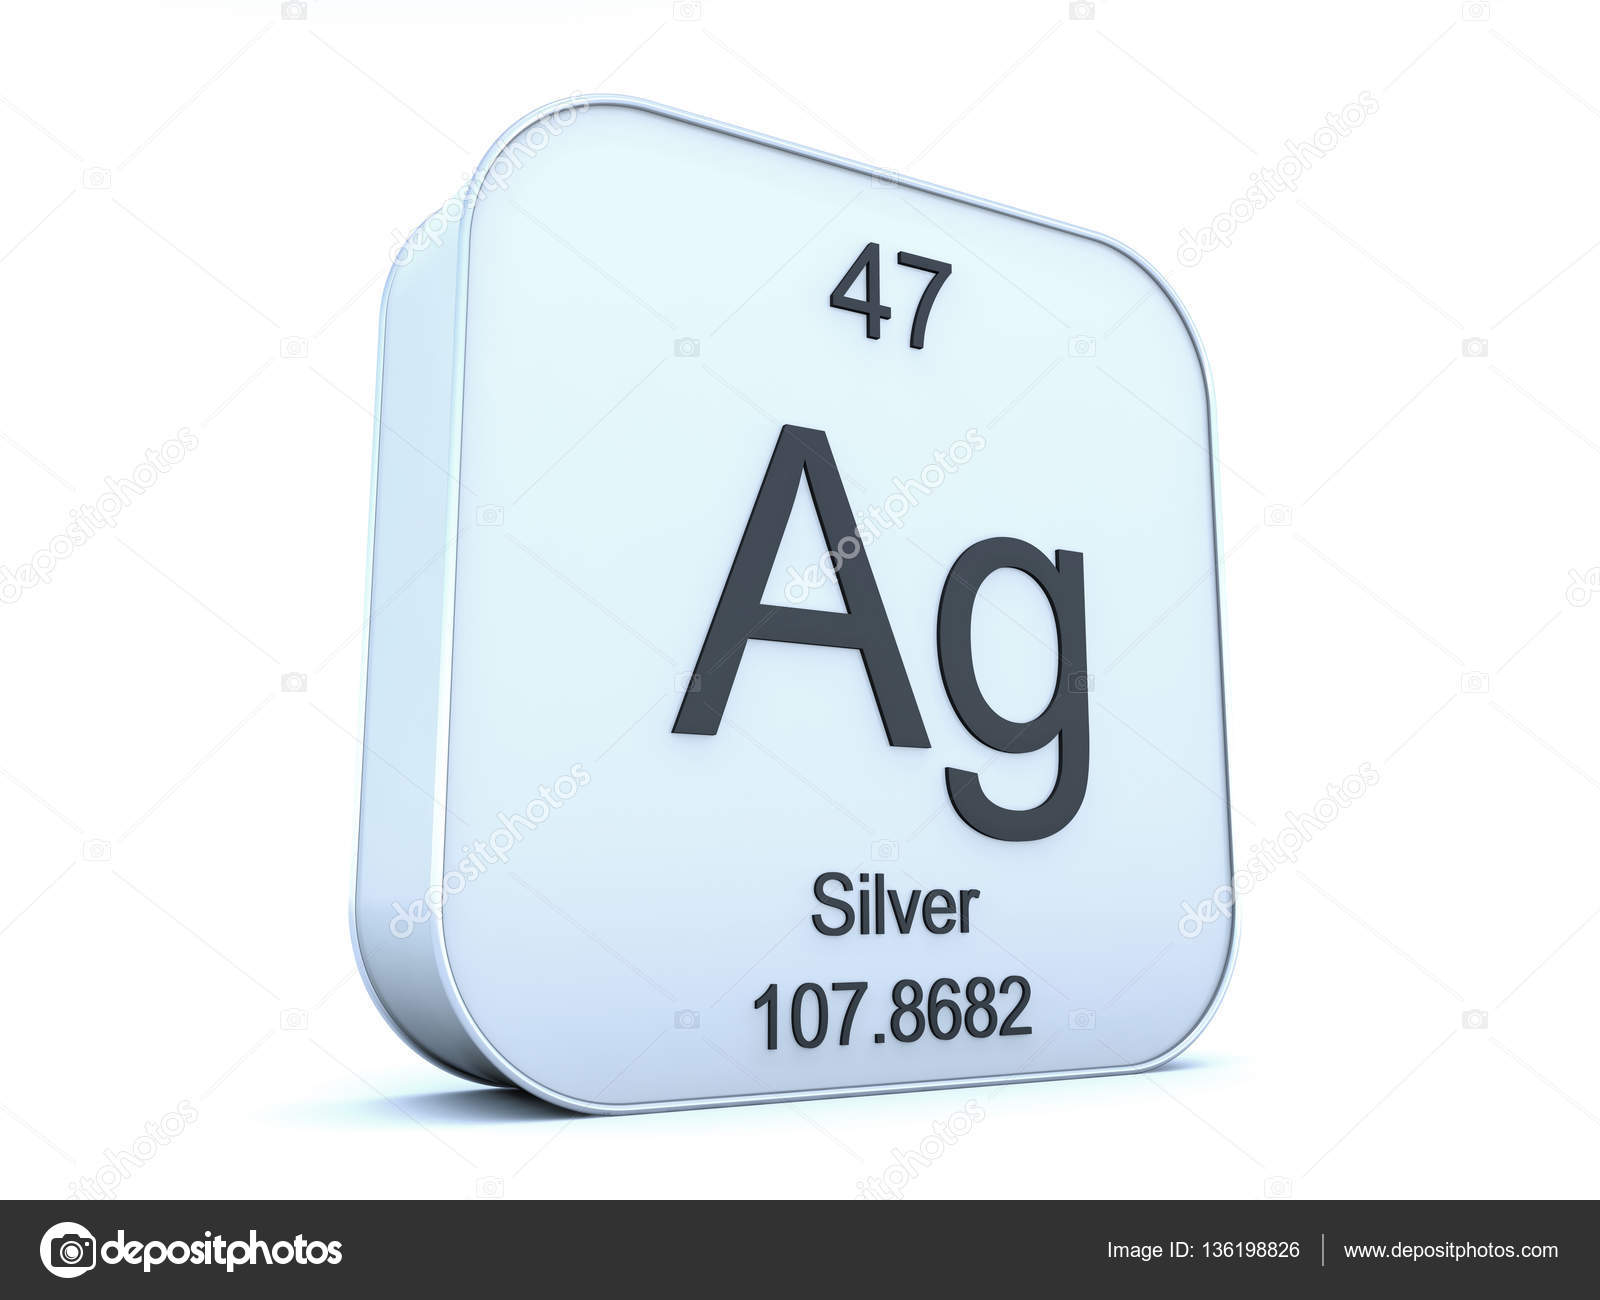 Silver element on white square icon foto de stock conceptw silver element symbol from the periodic table on white rounded square icon foto de conceptw buycottarizona